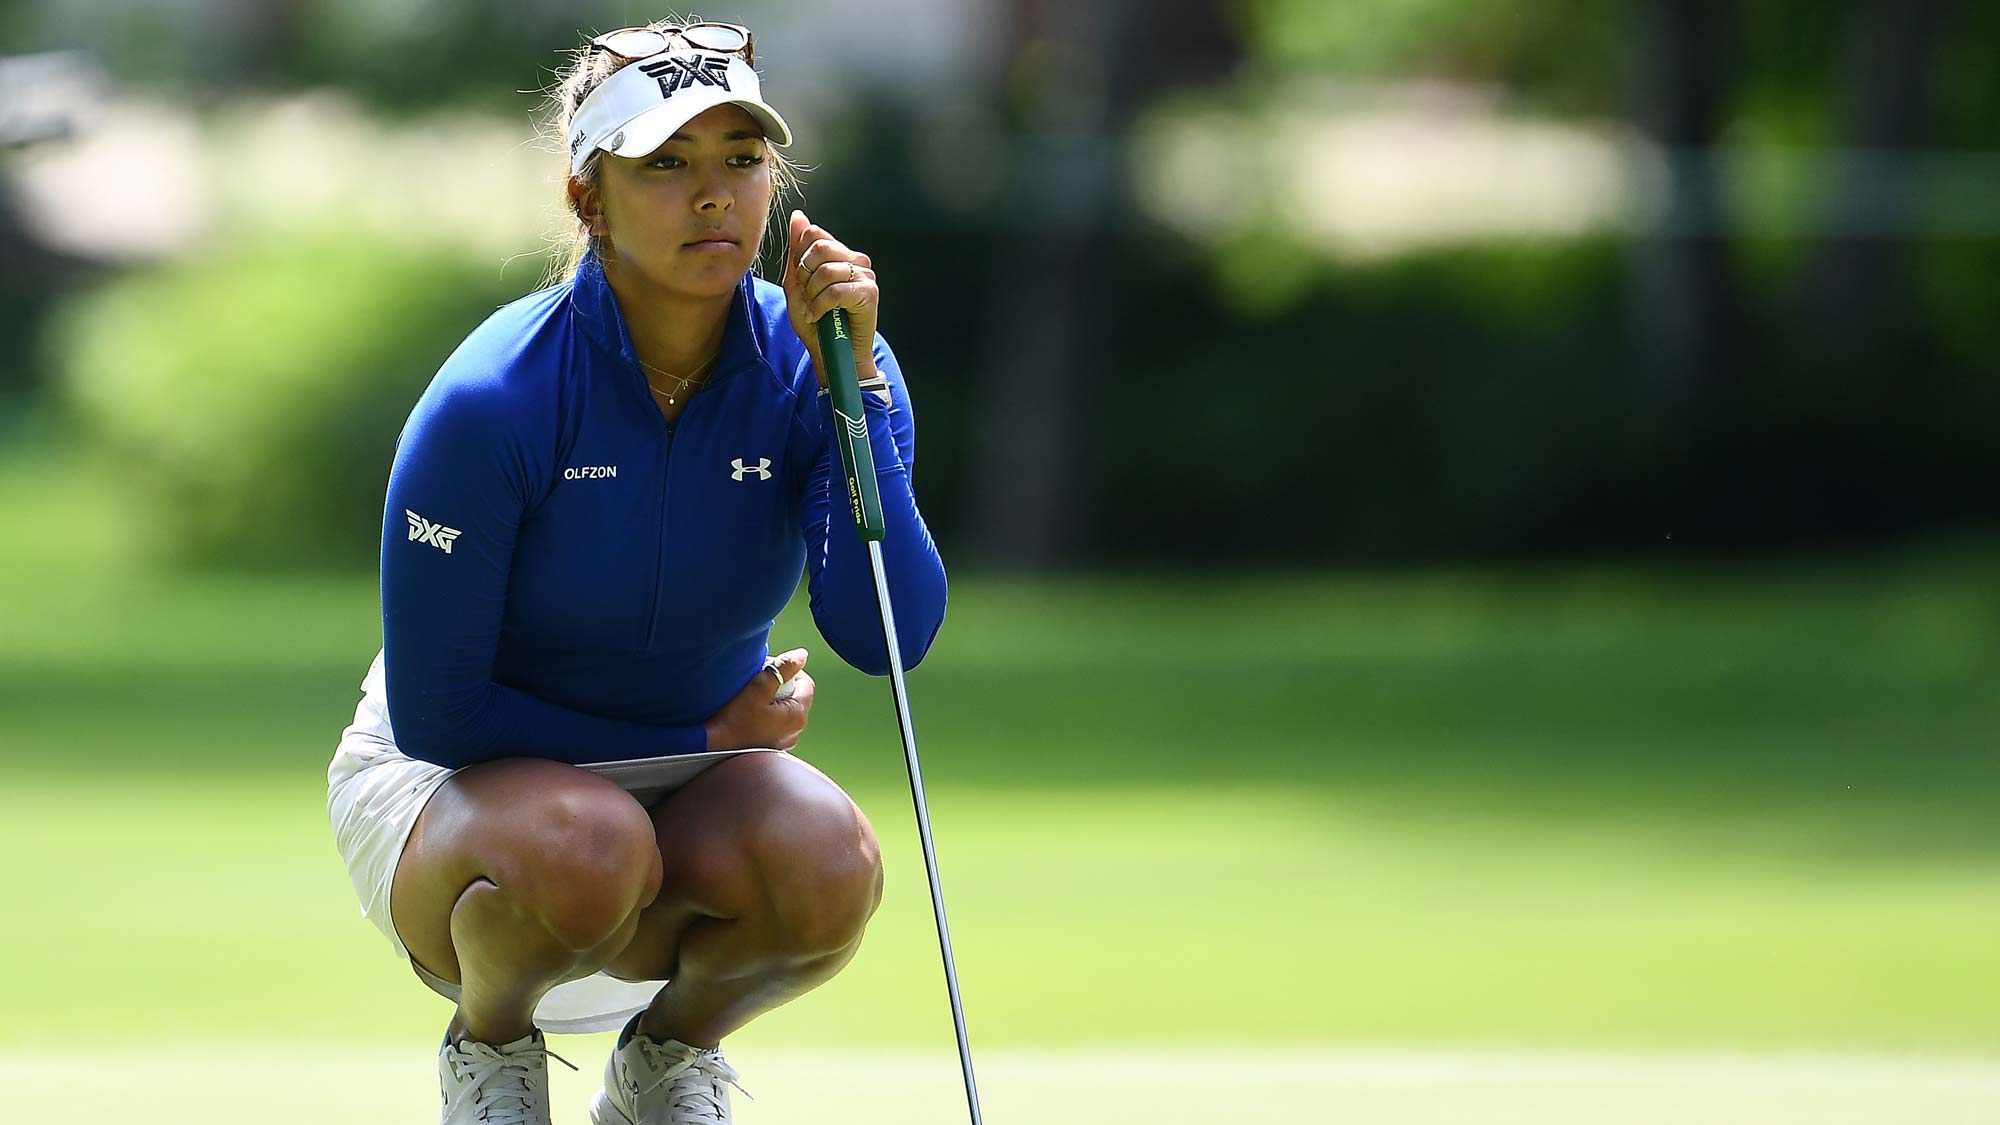 Alison Lee lines up a putt on the 17th green during the first round of the Thornberry Creek LPGA Classic